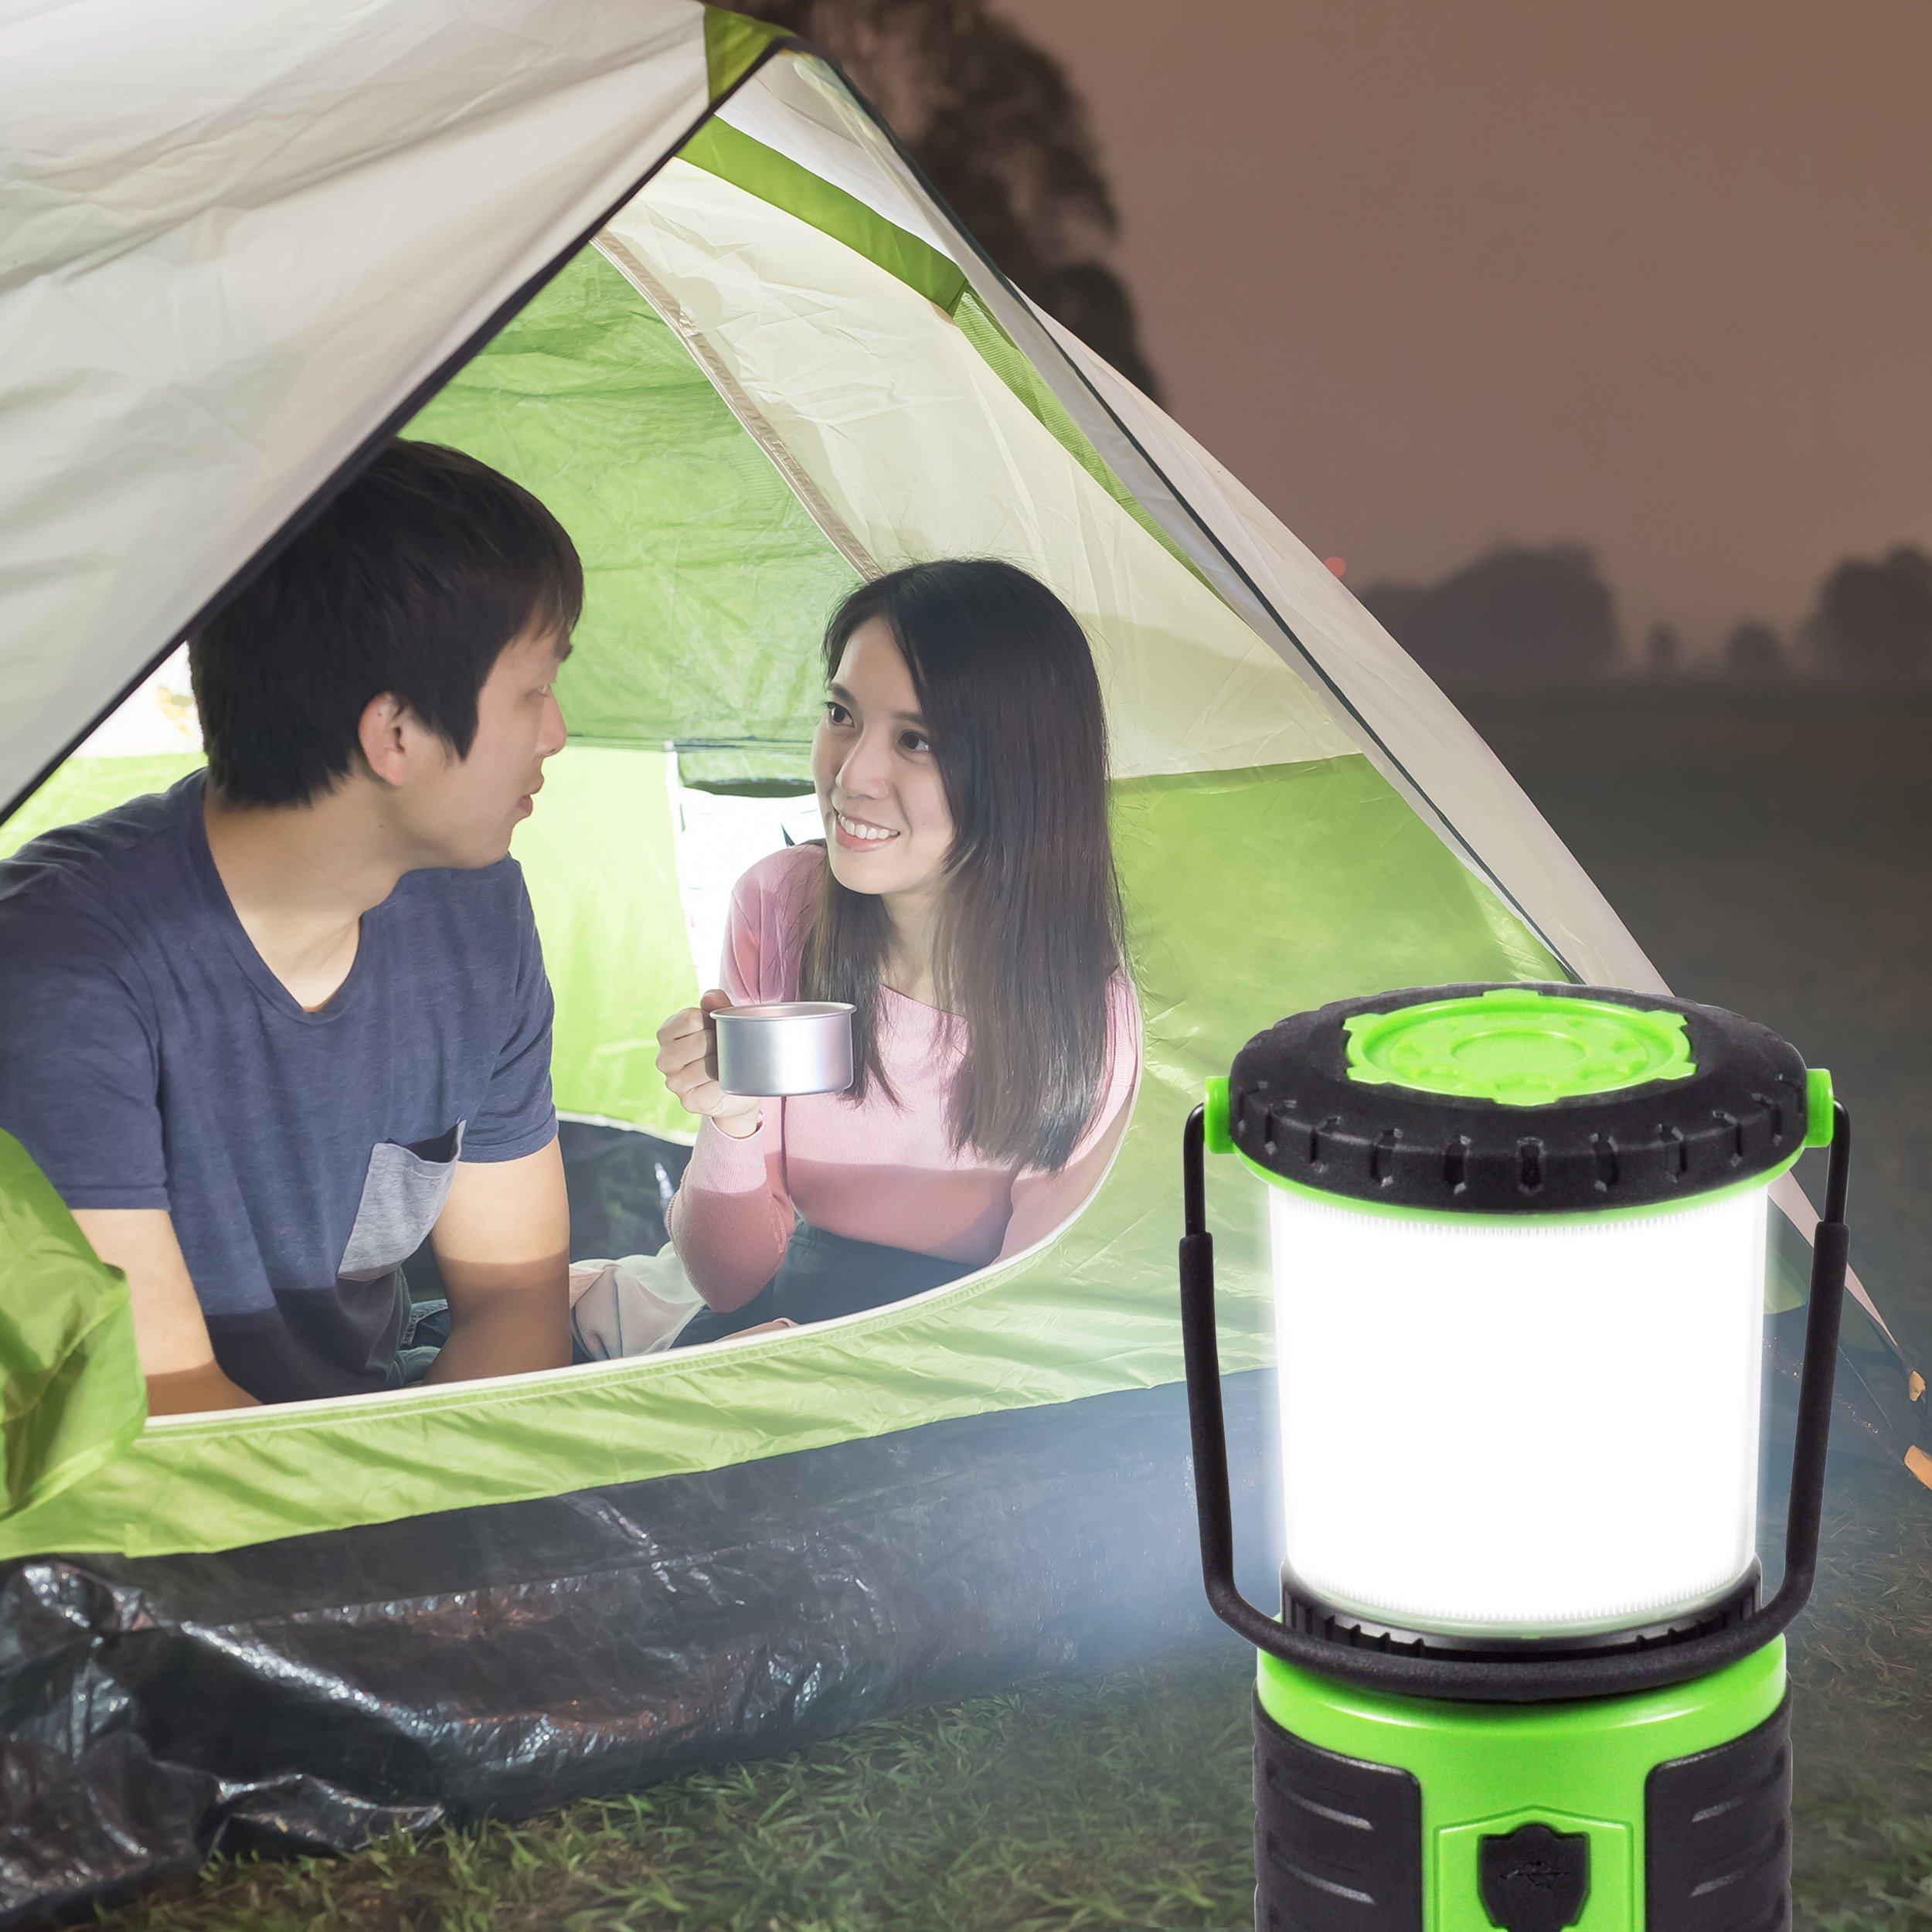 Blazin' Bison Brightest Rechargeable LED Lantern | 400 Hour Runtime | Phone Charger | Hurricane, Emergency, Storm (400 Lumen, Green) by Blazin' Bison (Image #2)